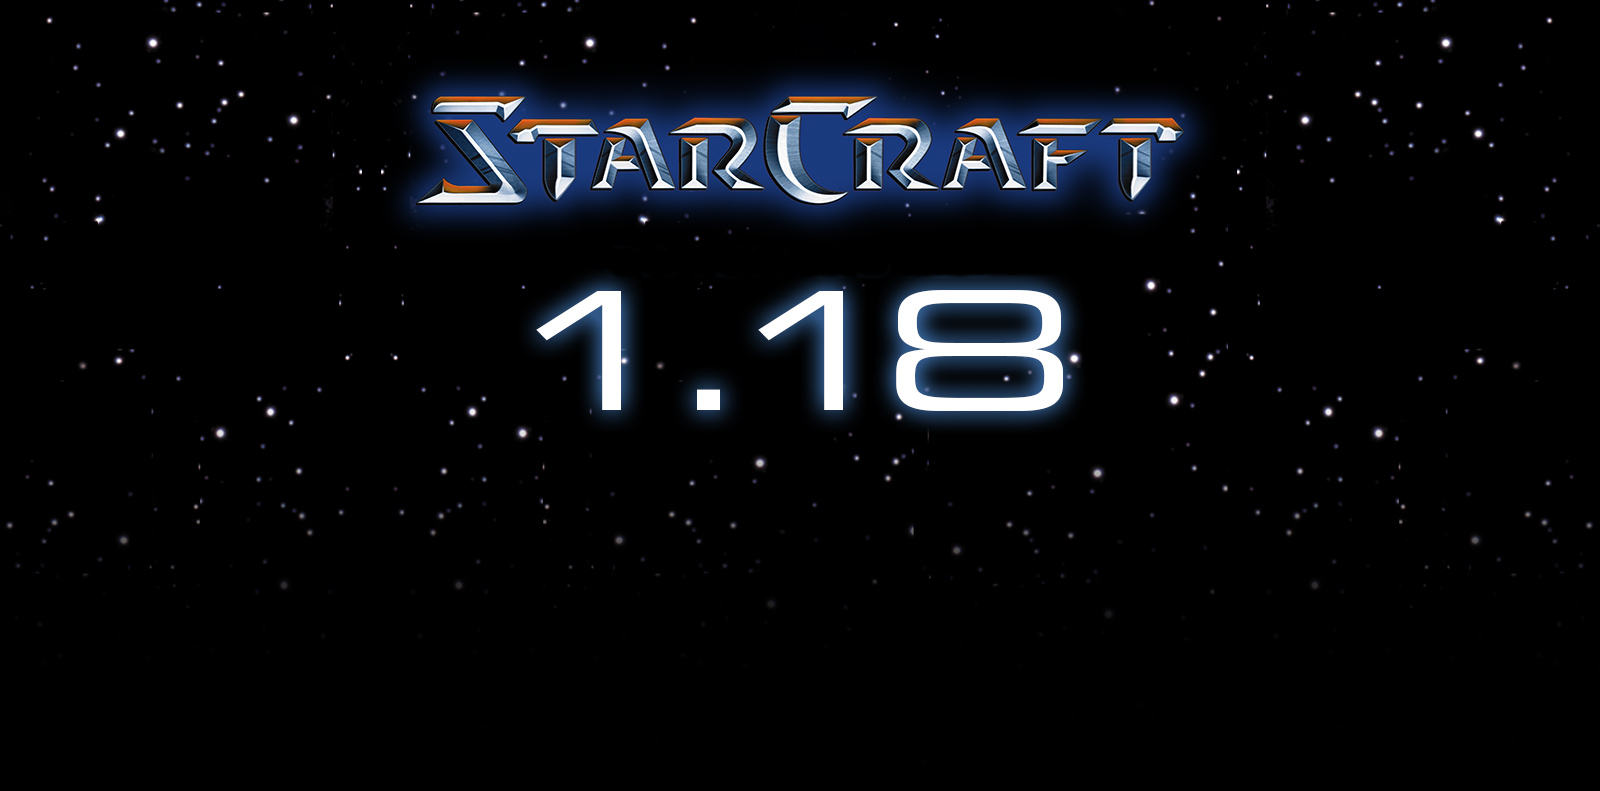 Notes de mise à jour 1.18 de StarCraft: Brood War